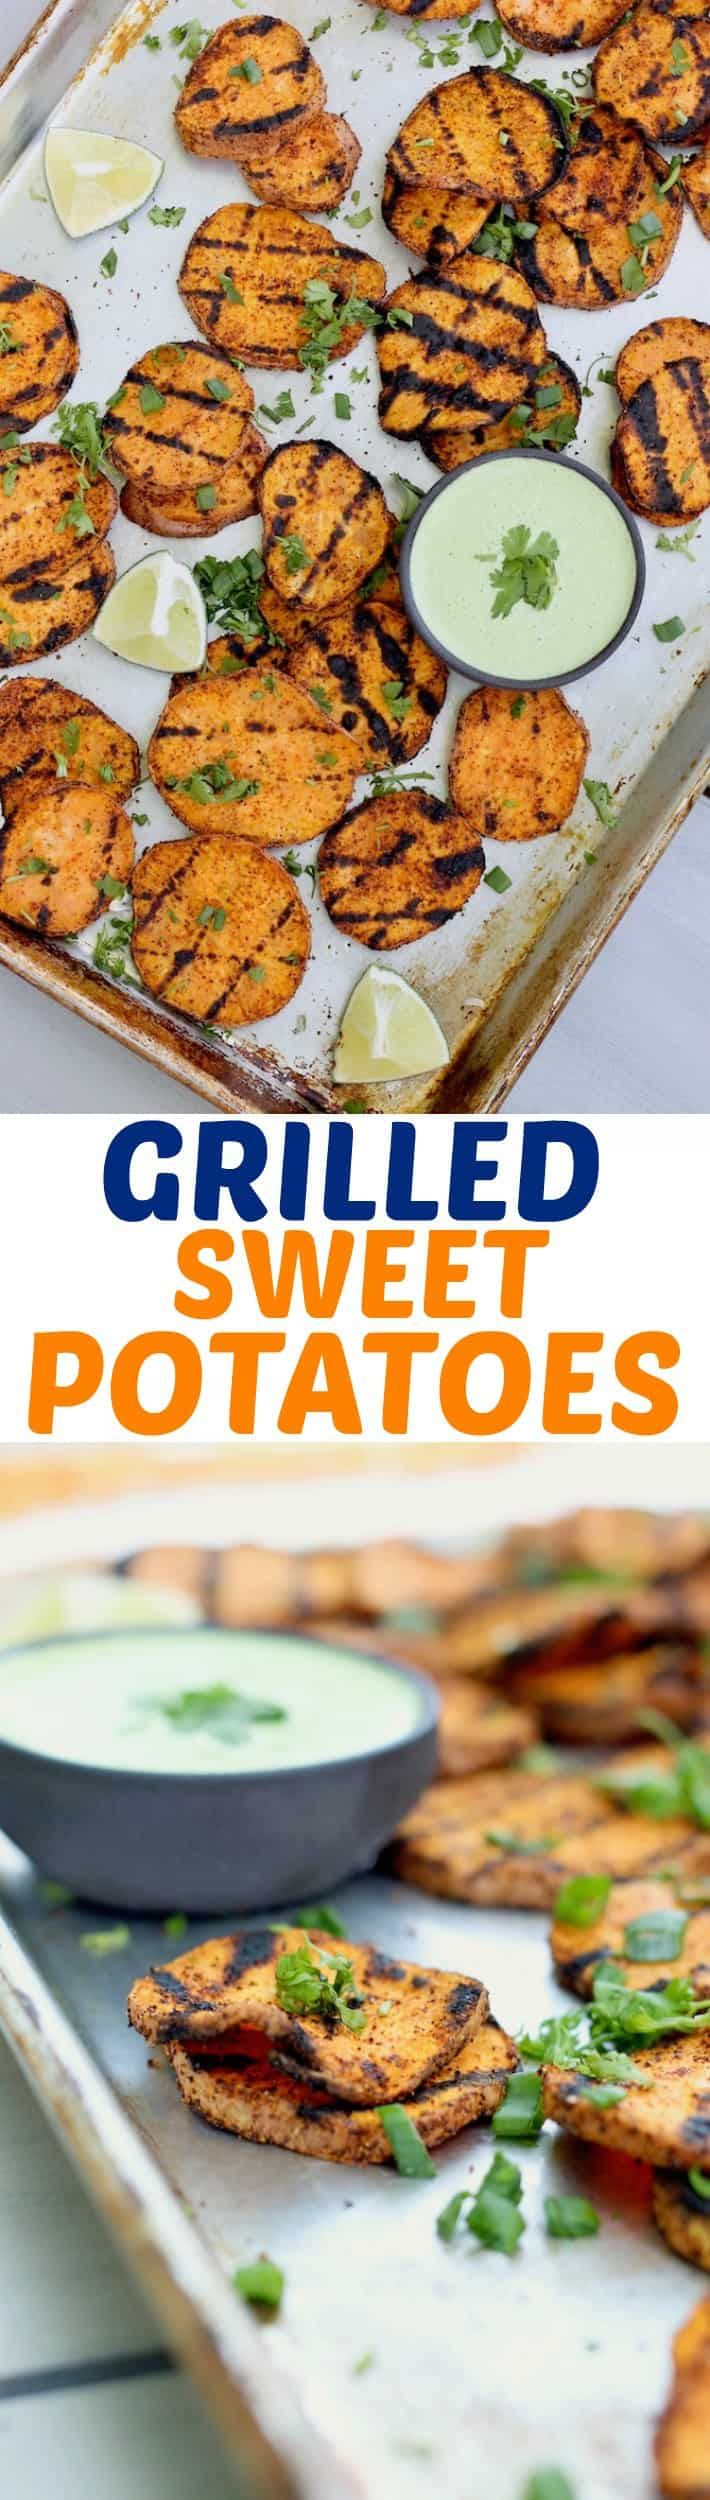 Easy grilled sweet potatoes loaded with spices and grilled to perfection with a creamy cilantro lime yogurt sauce for dipping! The perfect healthy summer side dish.